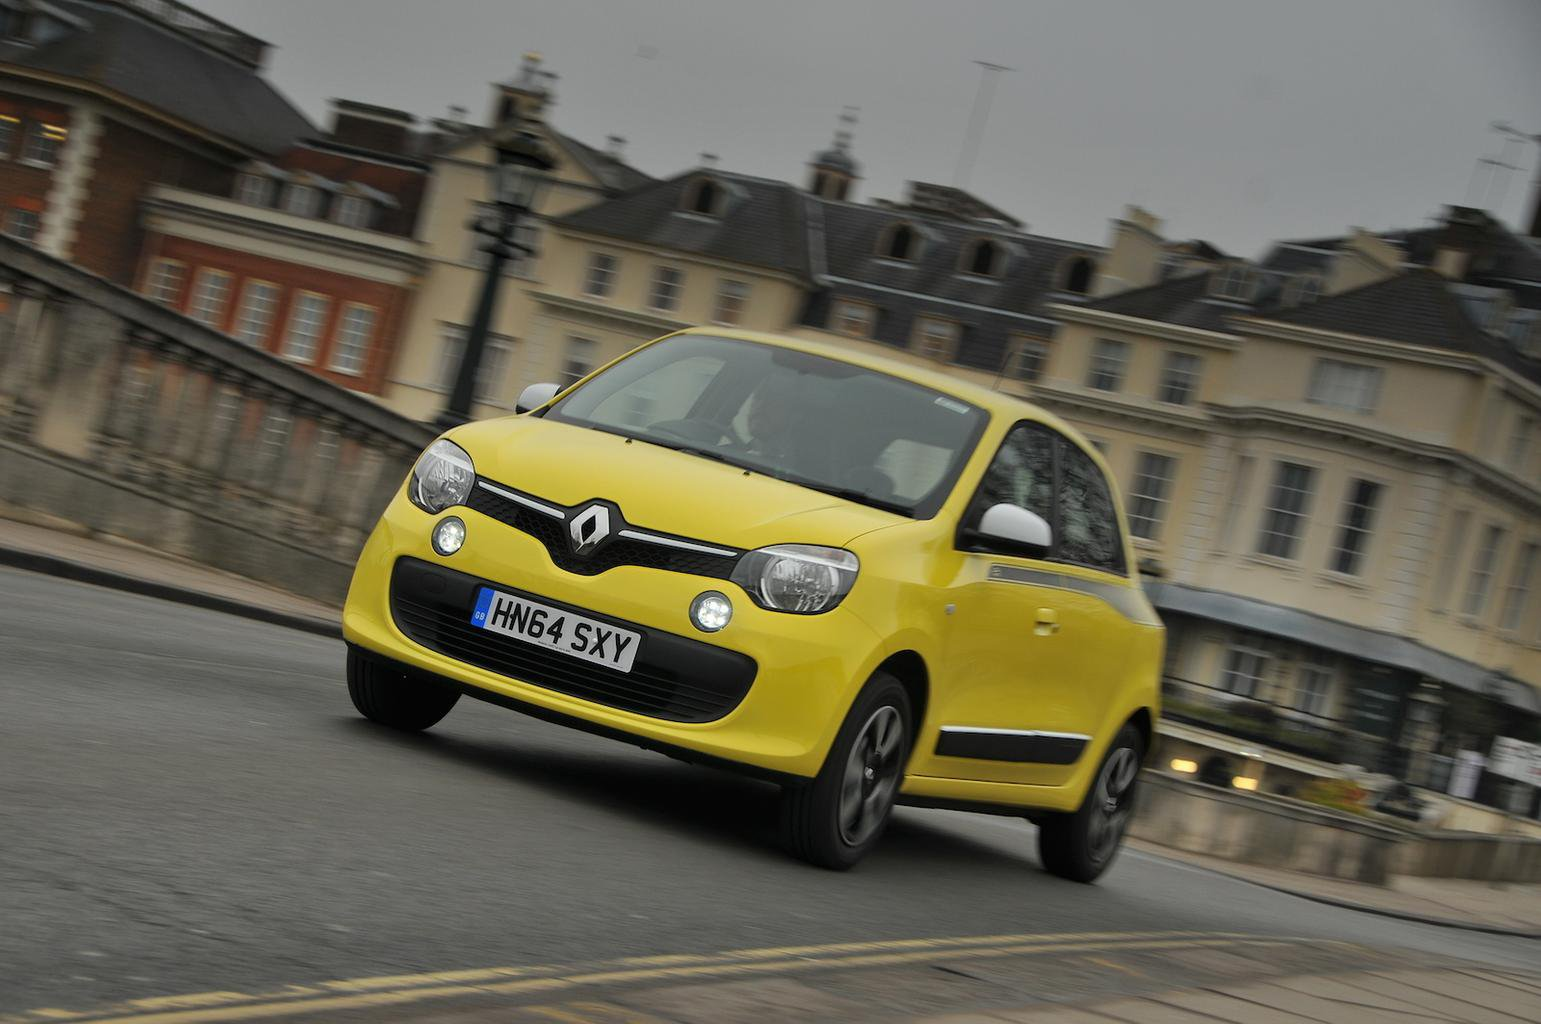 Renault Twingo long-term review